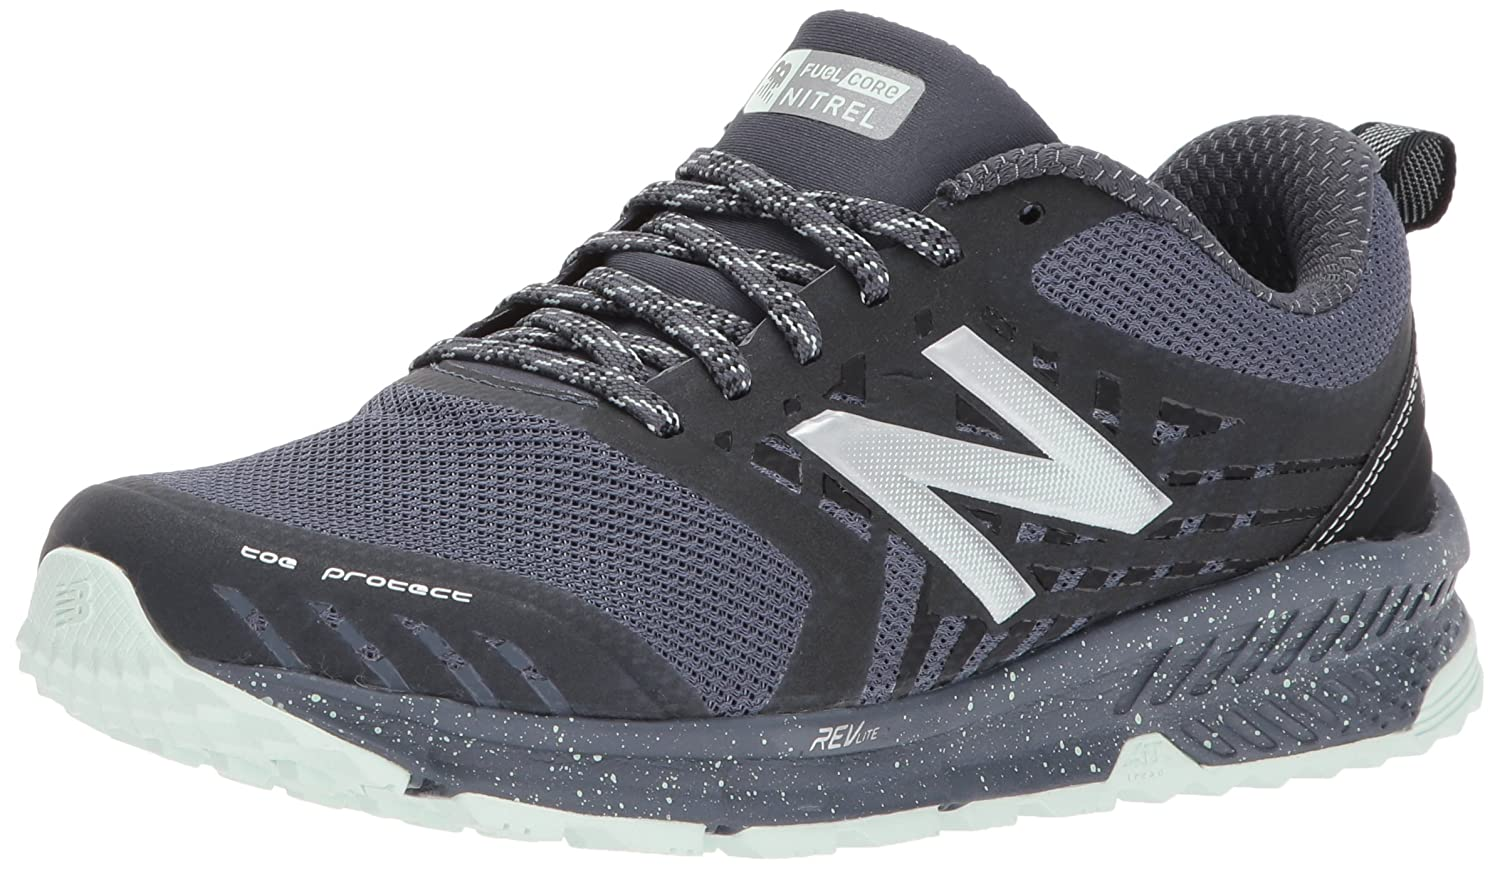 New Balance Women's Nitrel v1 FuelCore Trail Running Shoe B01NBOD07S 5.5 D US|Grey/Black